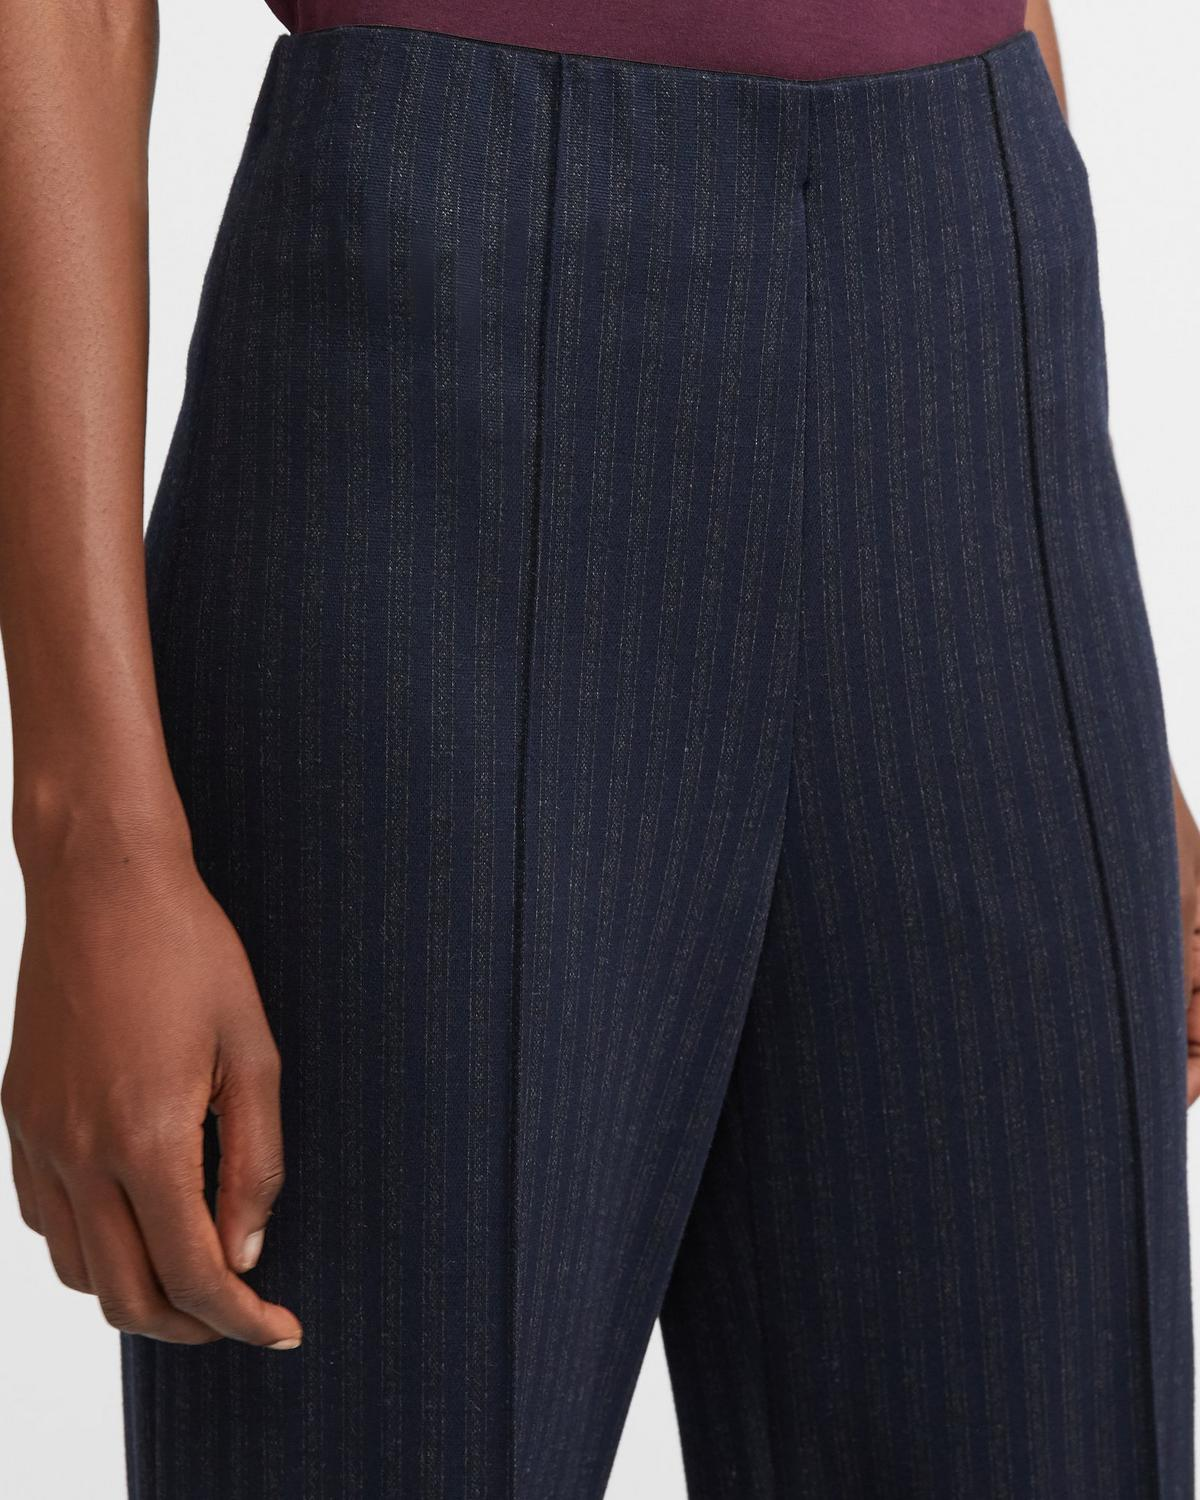 Wide Leg Pant in Striped Knit